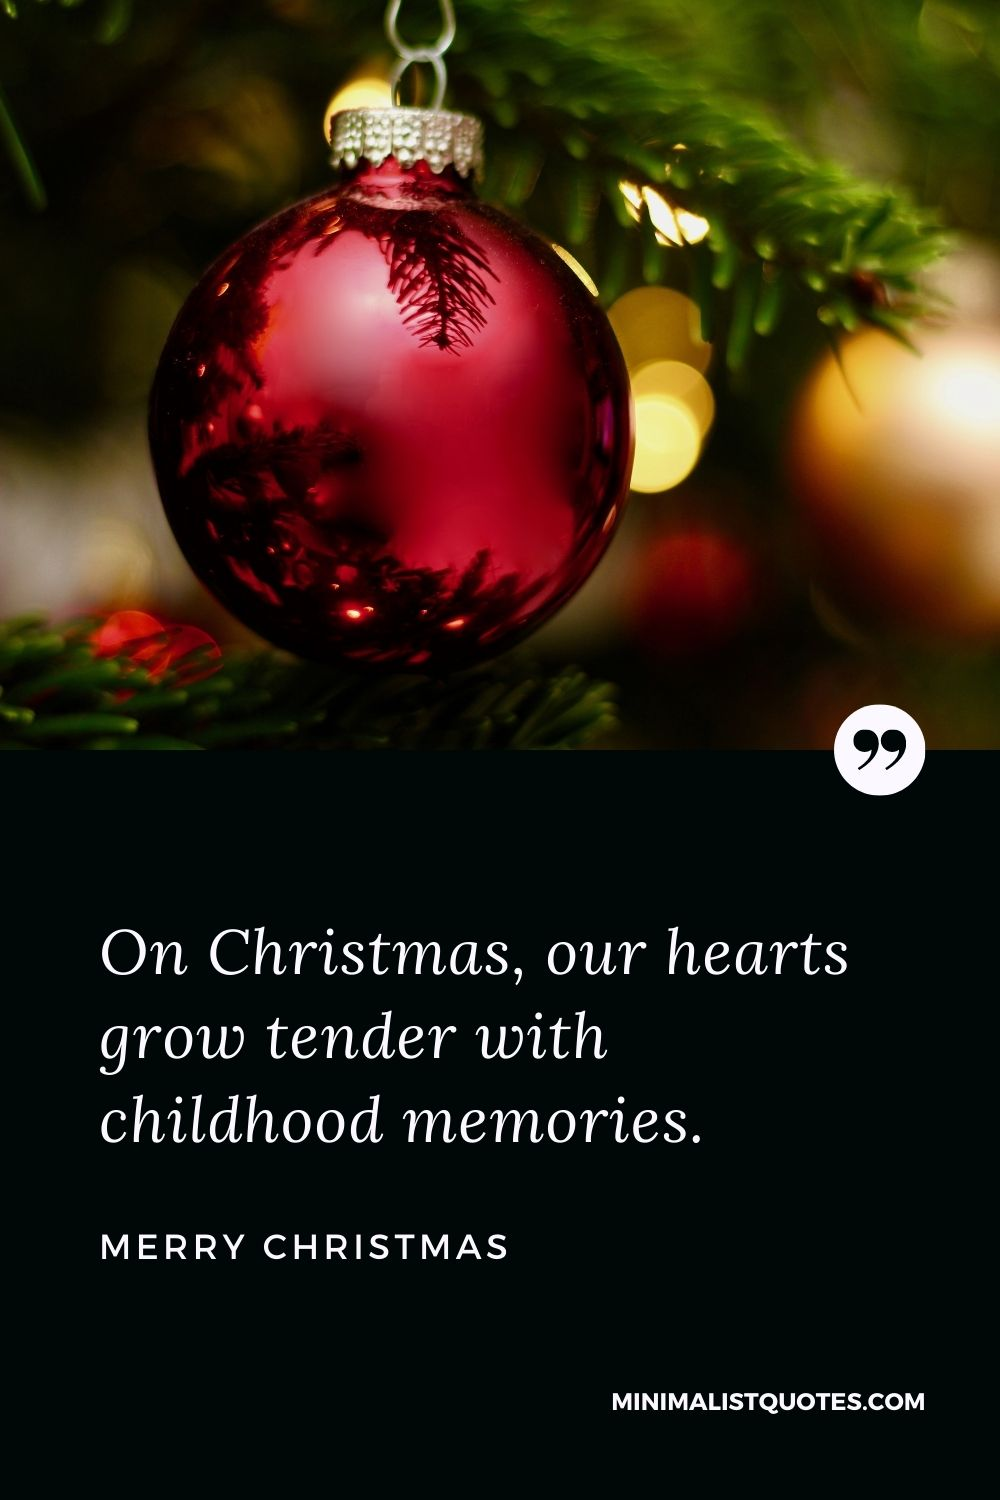 Merry Christmas Wish - On Christmas, our hearts grow tender with childhood memories. Merry Christmas!